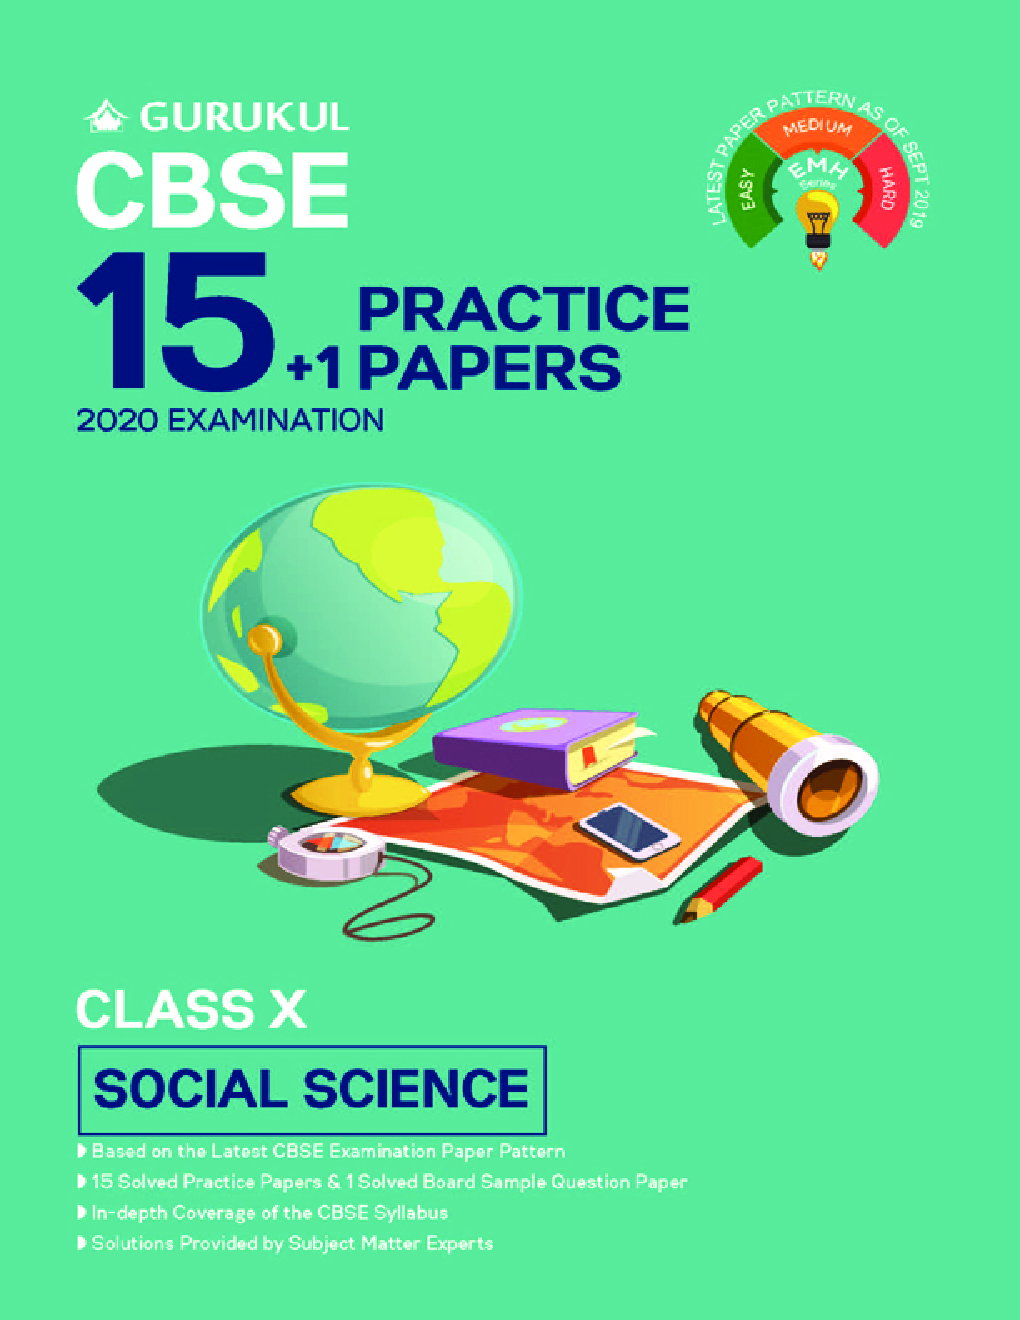 Oswal CBSE 15 + 1 Practice Papers - Social Science For Class X (For 2020 Exams) - Page 1